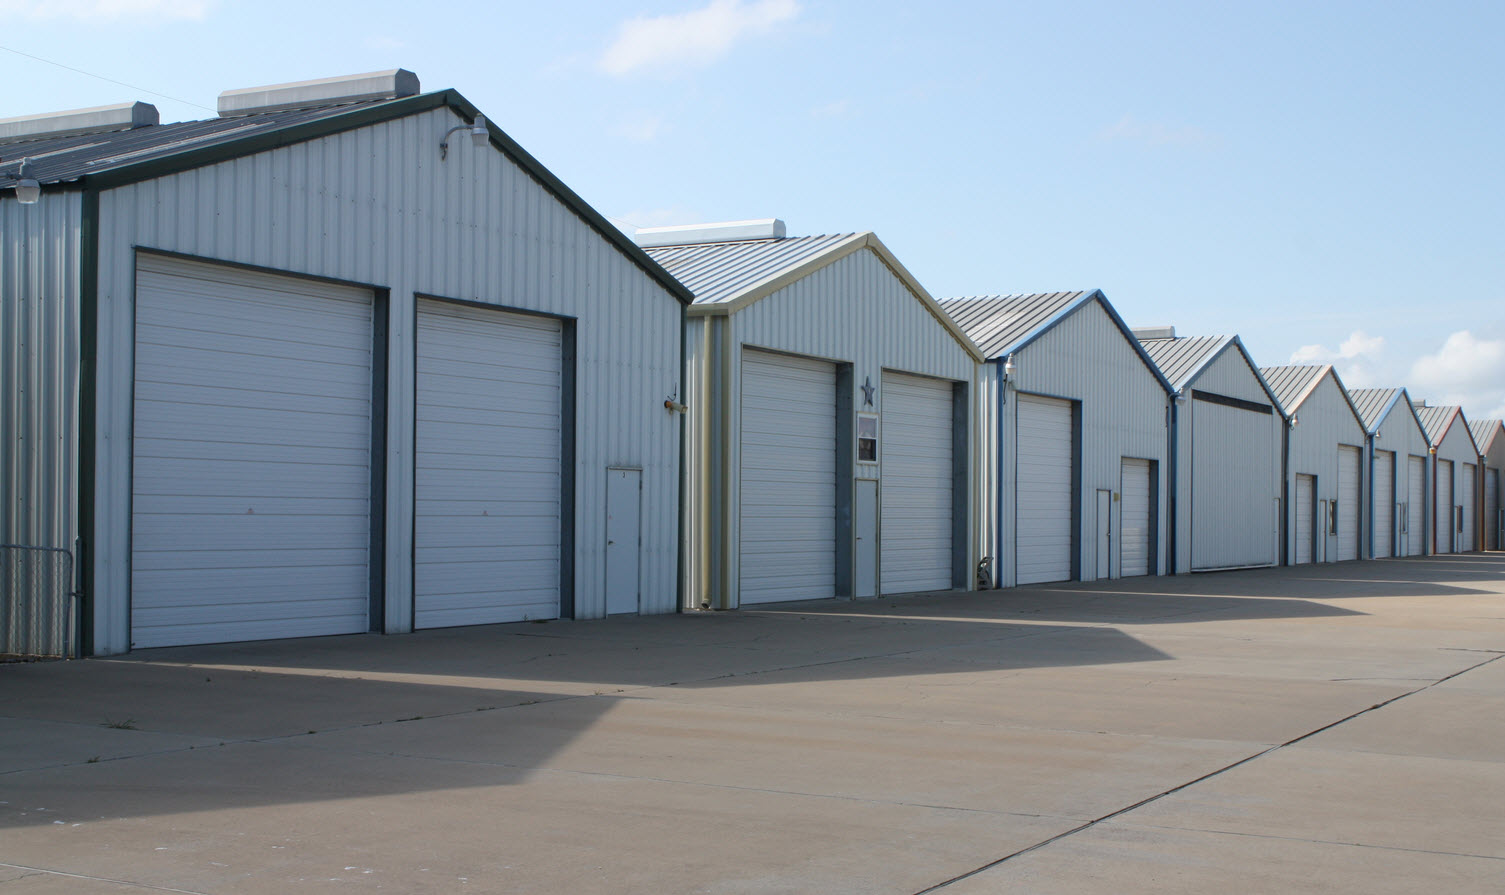 Owned Storage Buildings